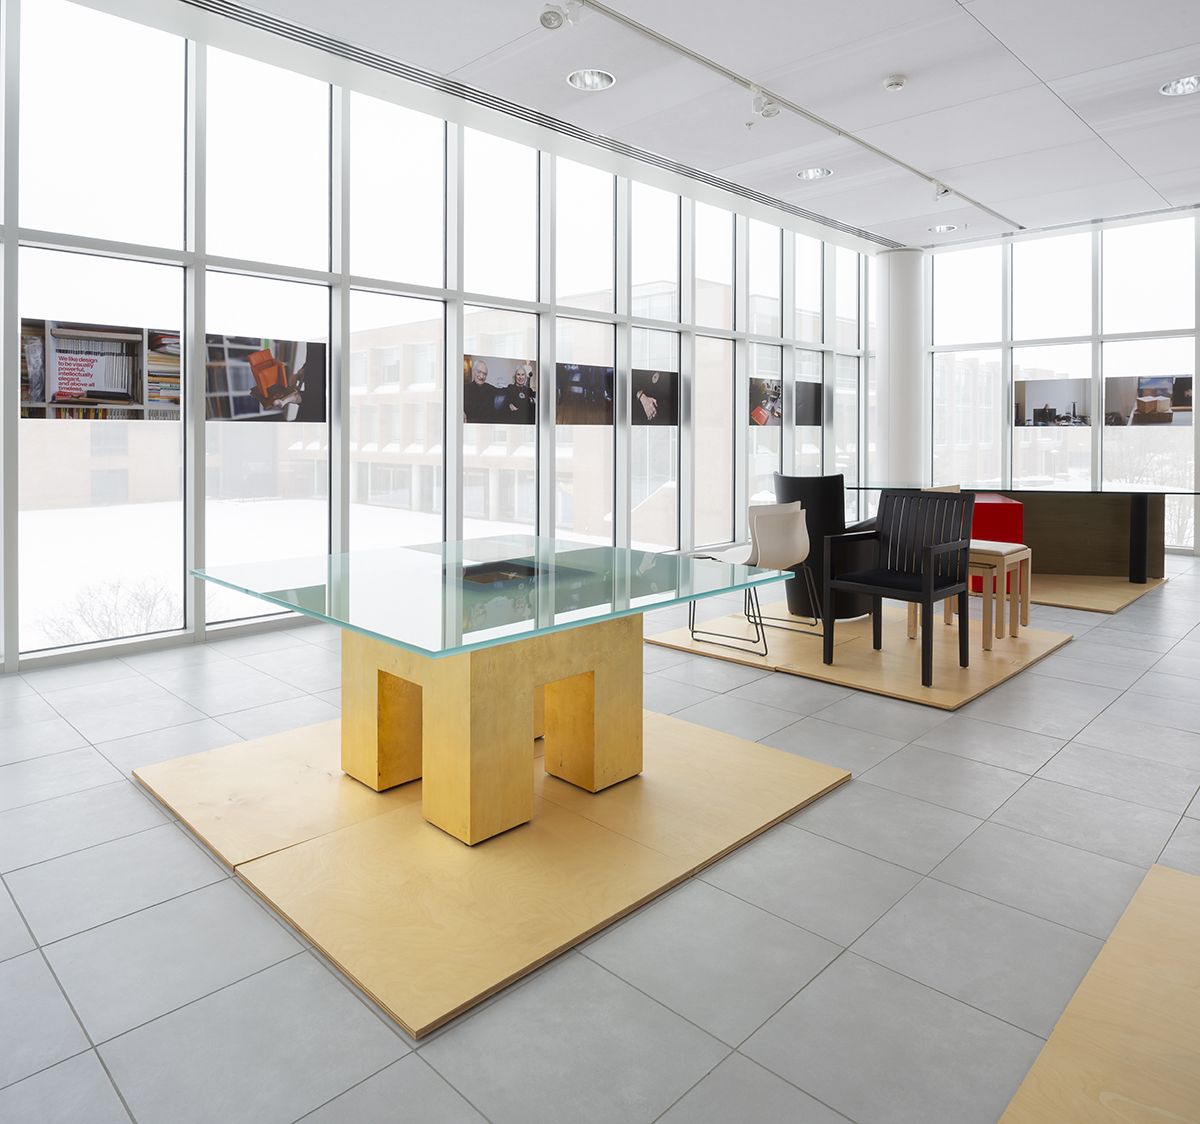 A display of photos of the Vignellis hangs in the Vignelli Center.